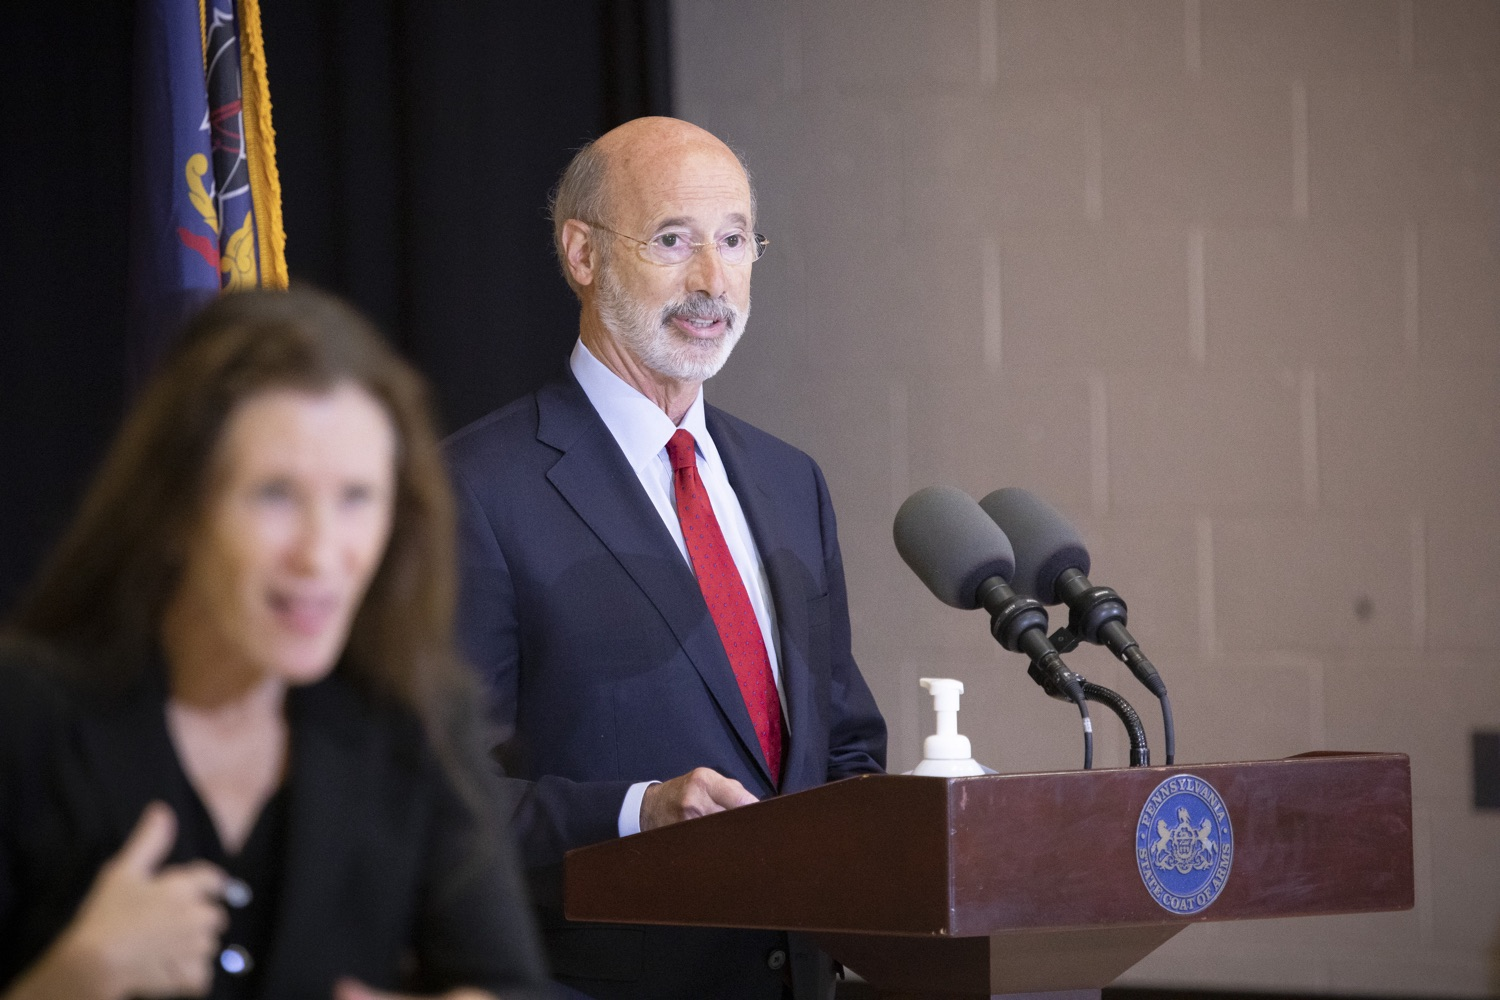 "<a href=""https://filesource.wostreaming.net/commonwealthofpa/photo/18310_gov_adult_use_cannabis_dz_020.jpg"" target=""_blank"">⇣ Download Photo<br></a>Governor Tom Wolf speaks to the press.Governor Tom Wolf visited The Mountain Center in Tobyhanna, Monroe County today to talk about the economic growth potential and restorative justice benefits of legalizing adult-use cannabis, something the state General Assembly has not yet done despite multiple requests from the governor and Lieutenant Governor John Fetterman to take up legislation this fall.  Tobyhanna, PA  October 13, 2020"